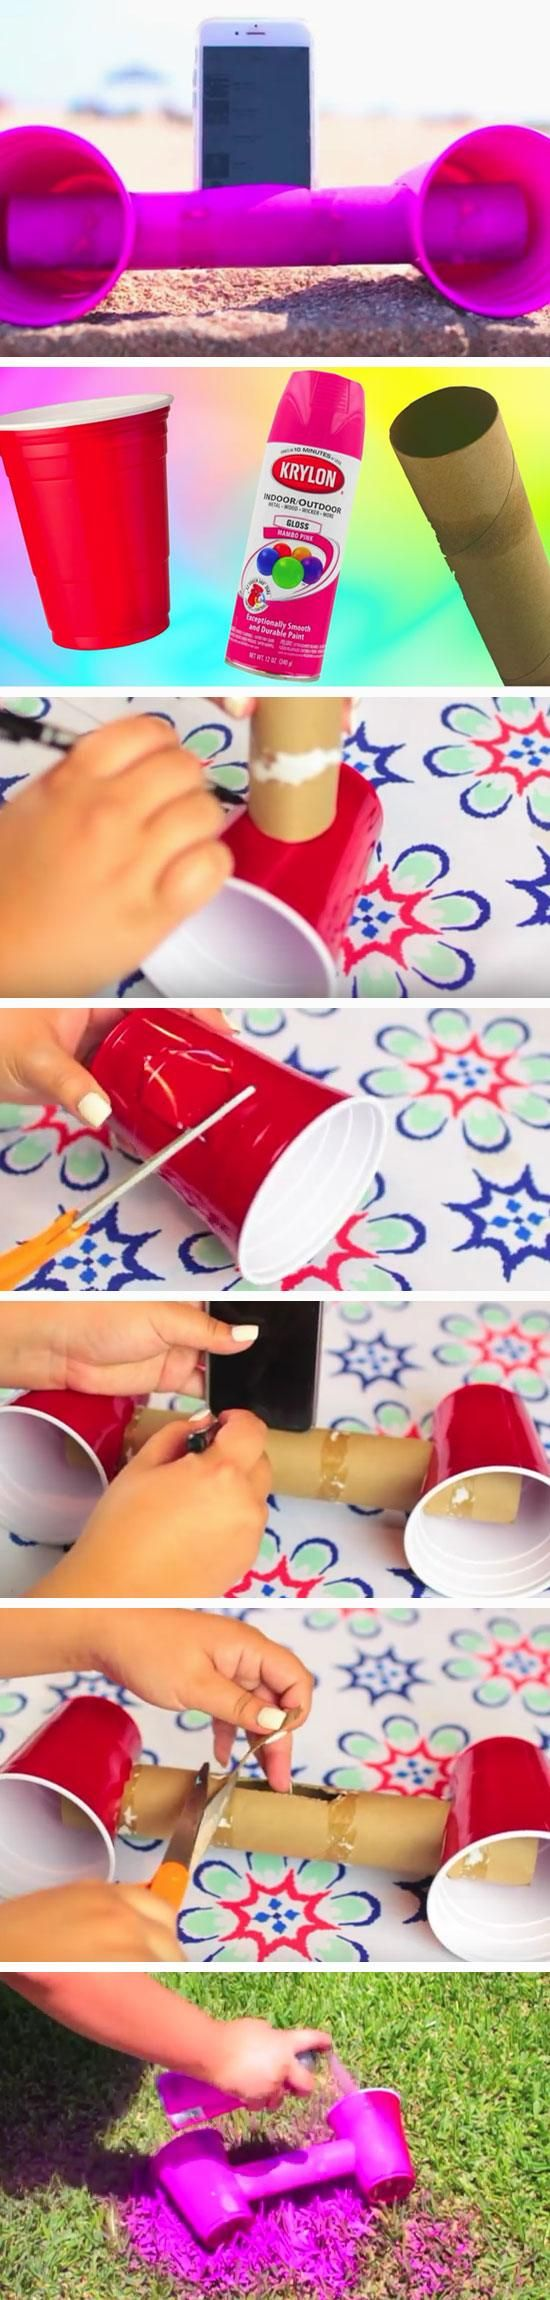 Make a Plastic Cup Speaker | 22 DIY Beach Hacks for Teens that will change your life!